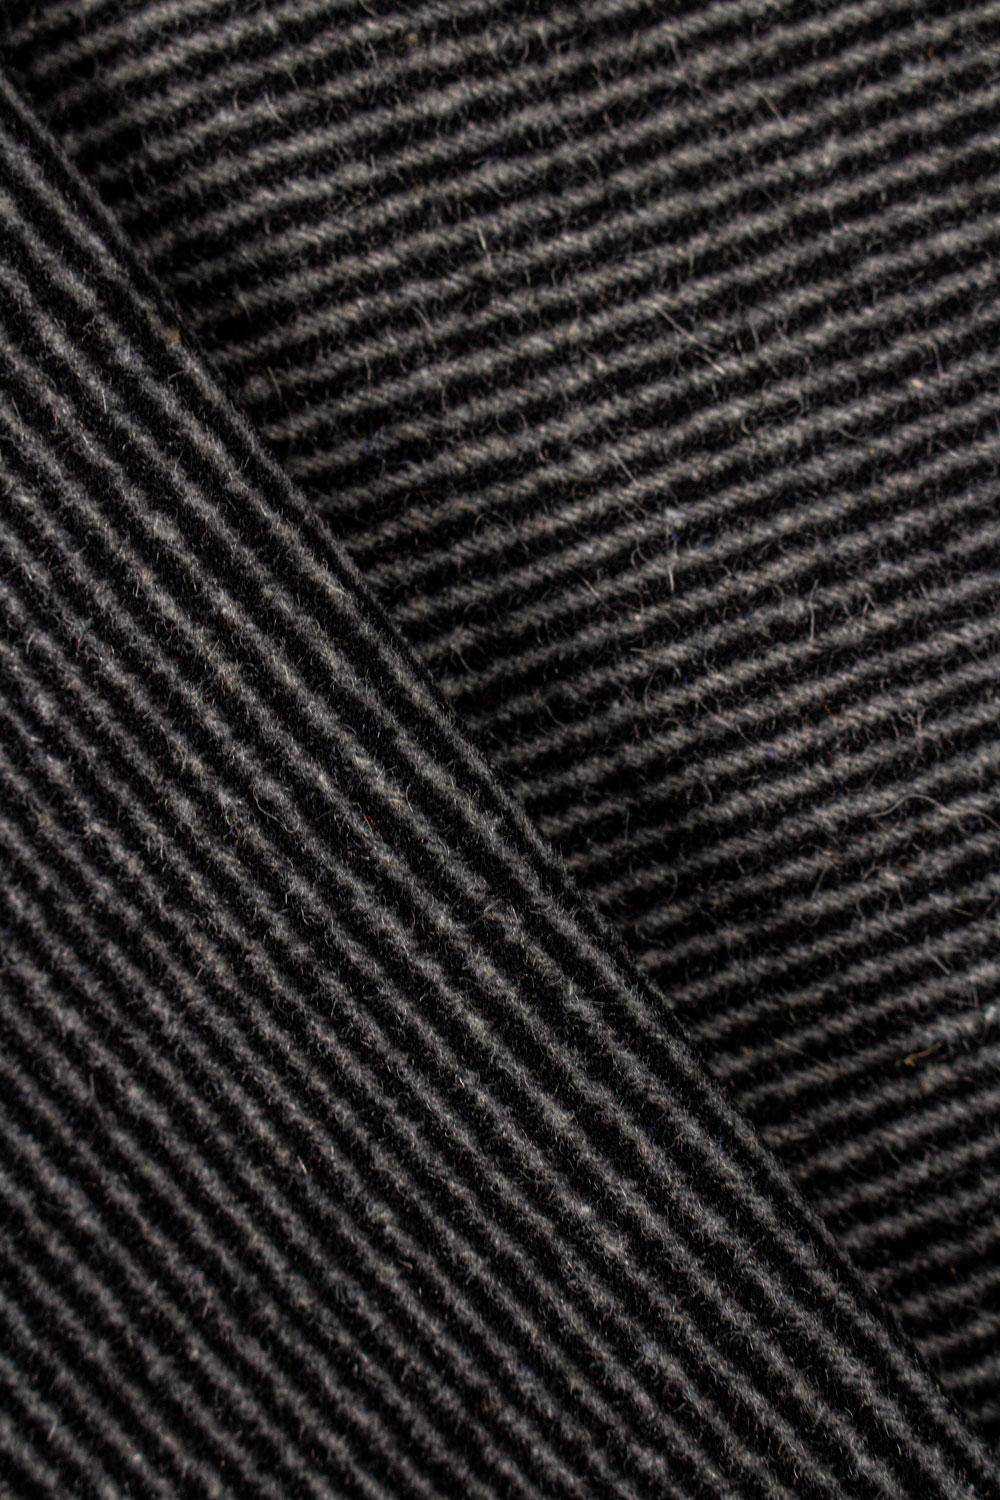 Fabric - Gabardine - Black & Grey Stripes - 150 cm - 360 g/m2